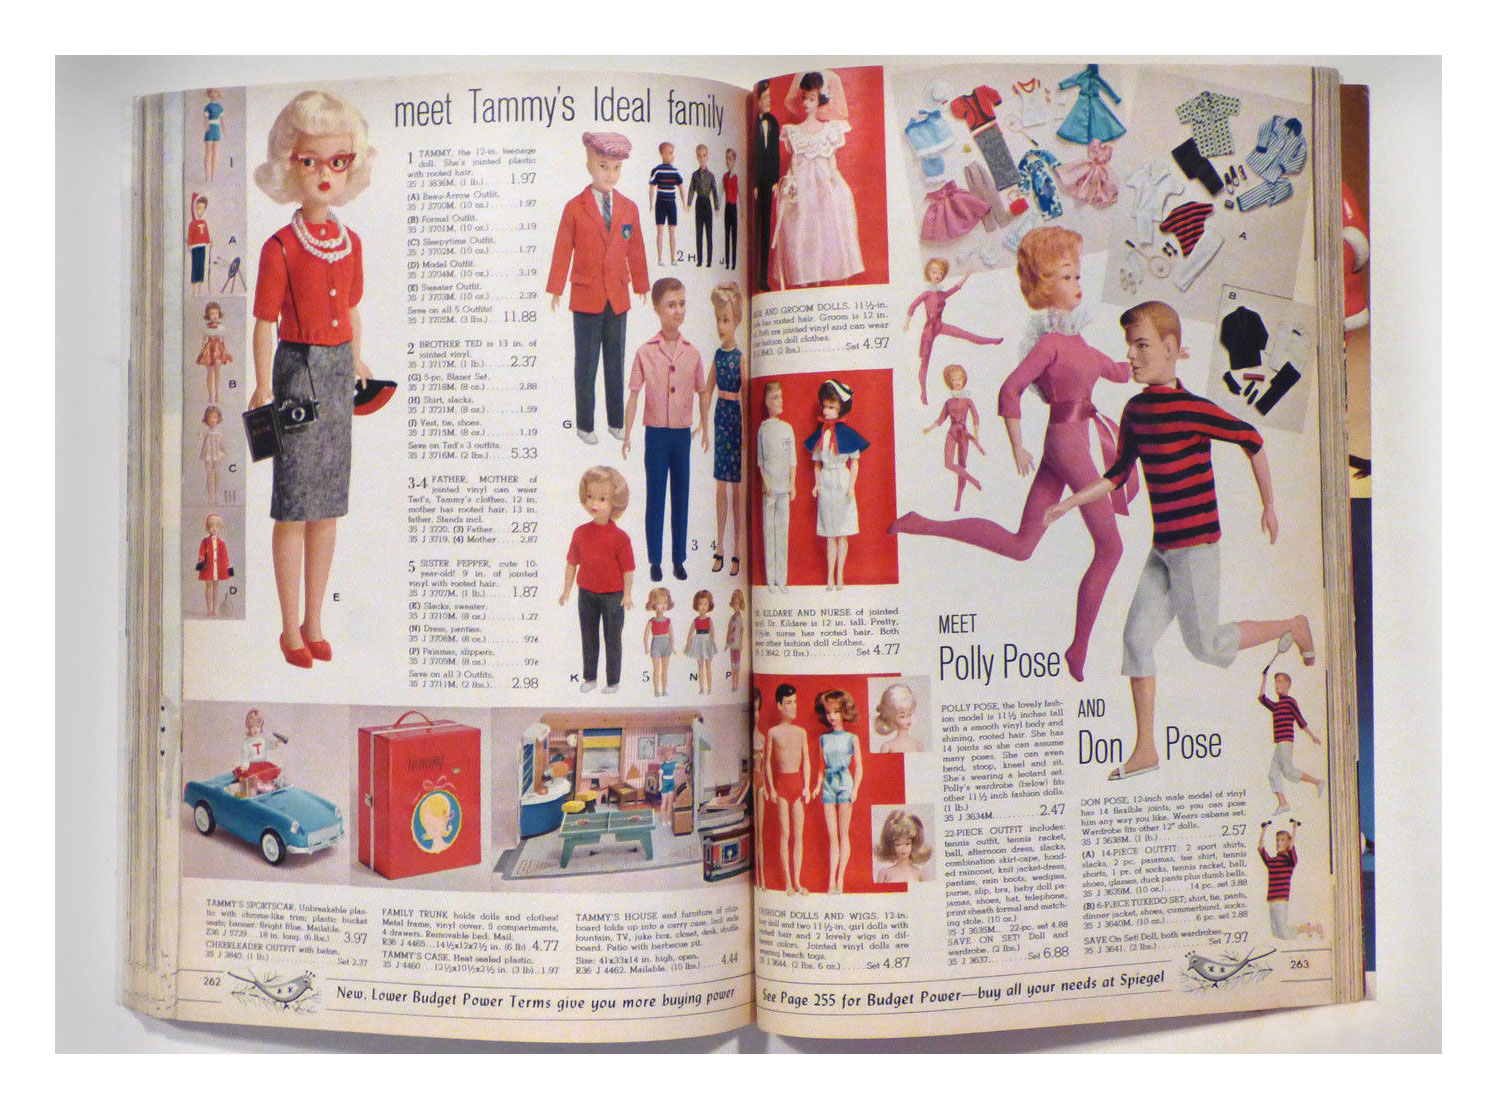 From 1963 Spiegel Christmas Book